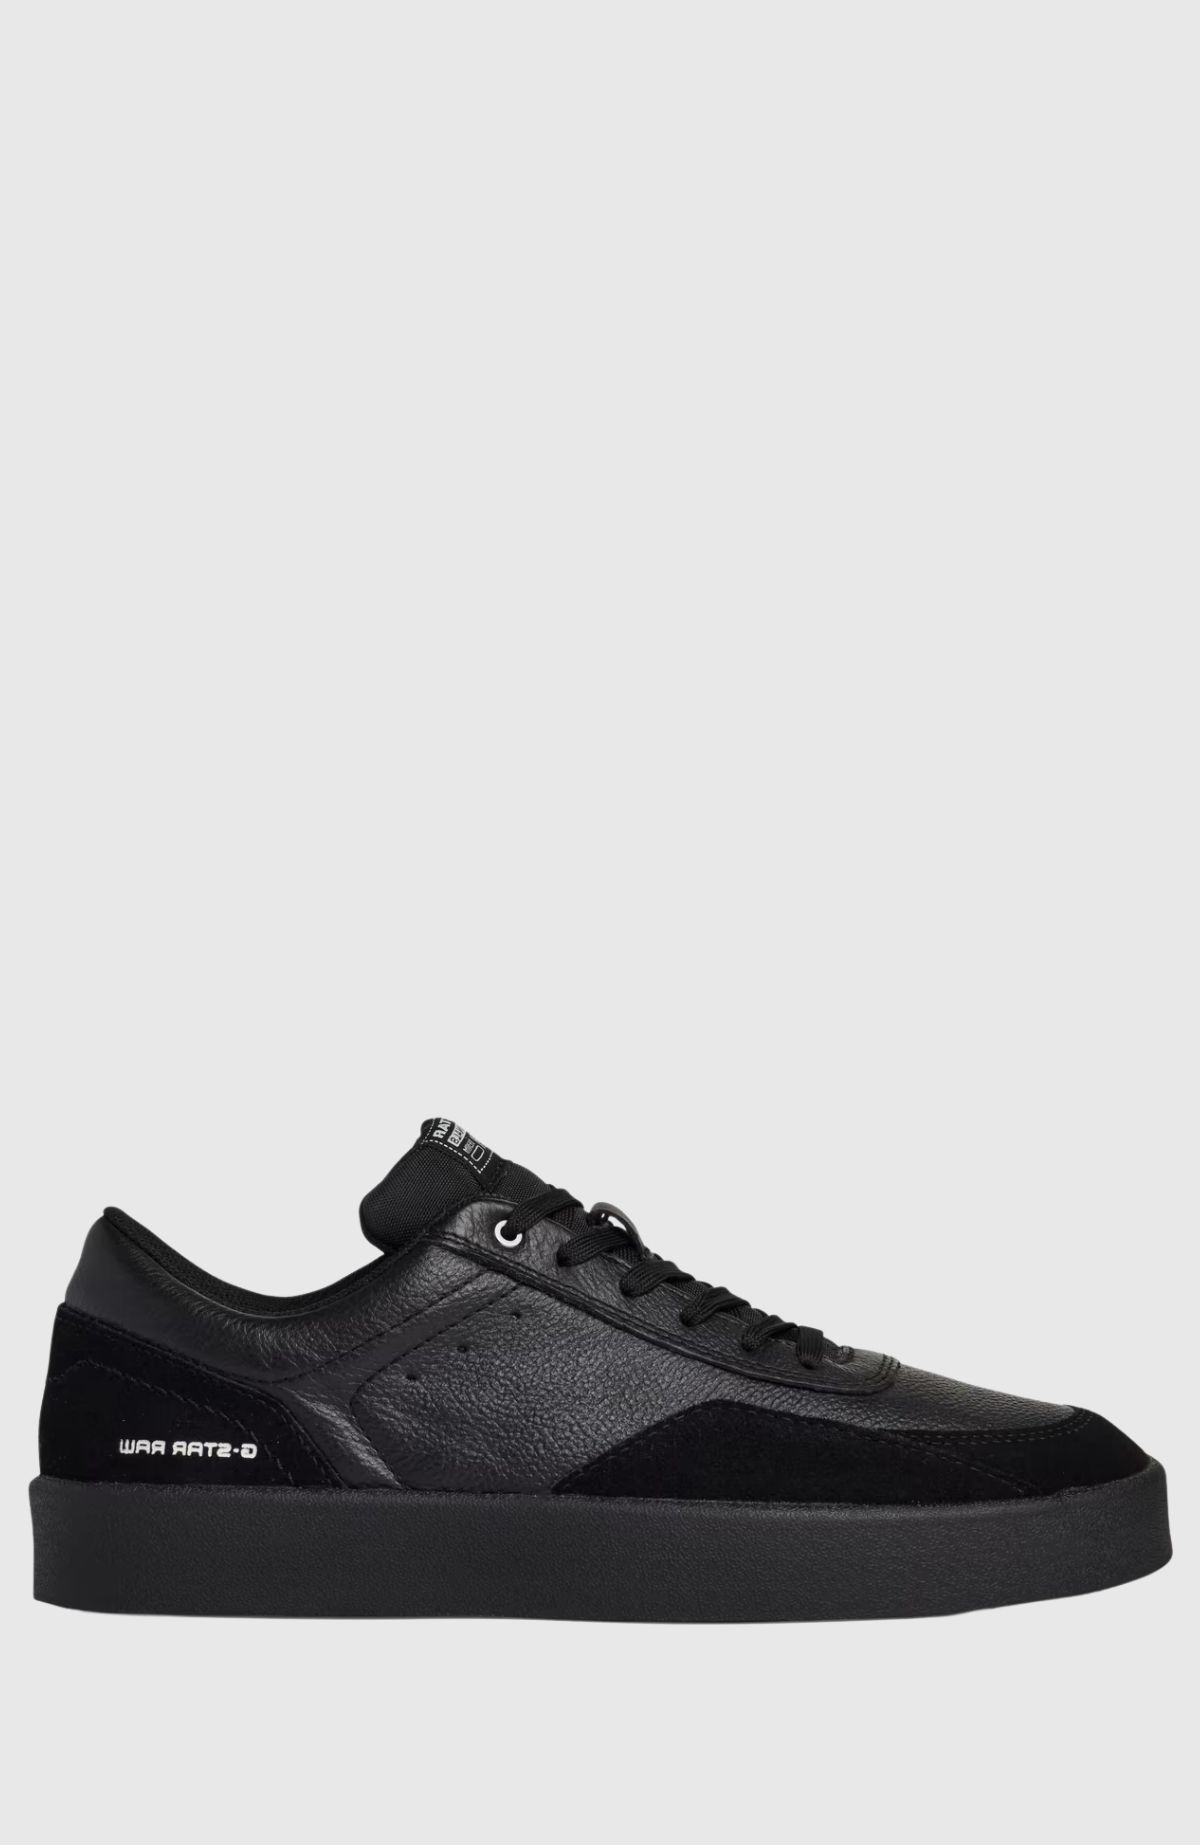 Tect Pro Sneakers